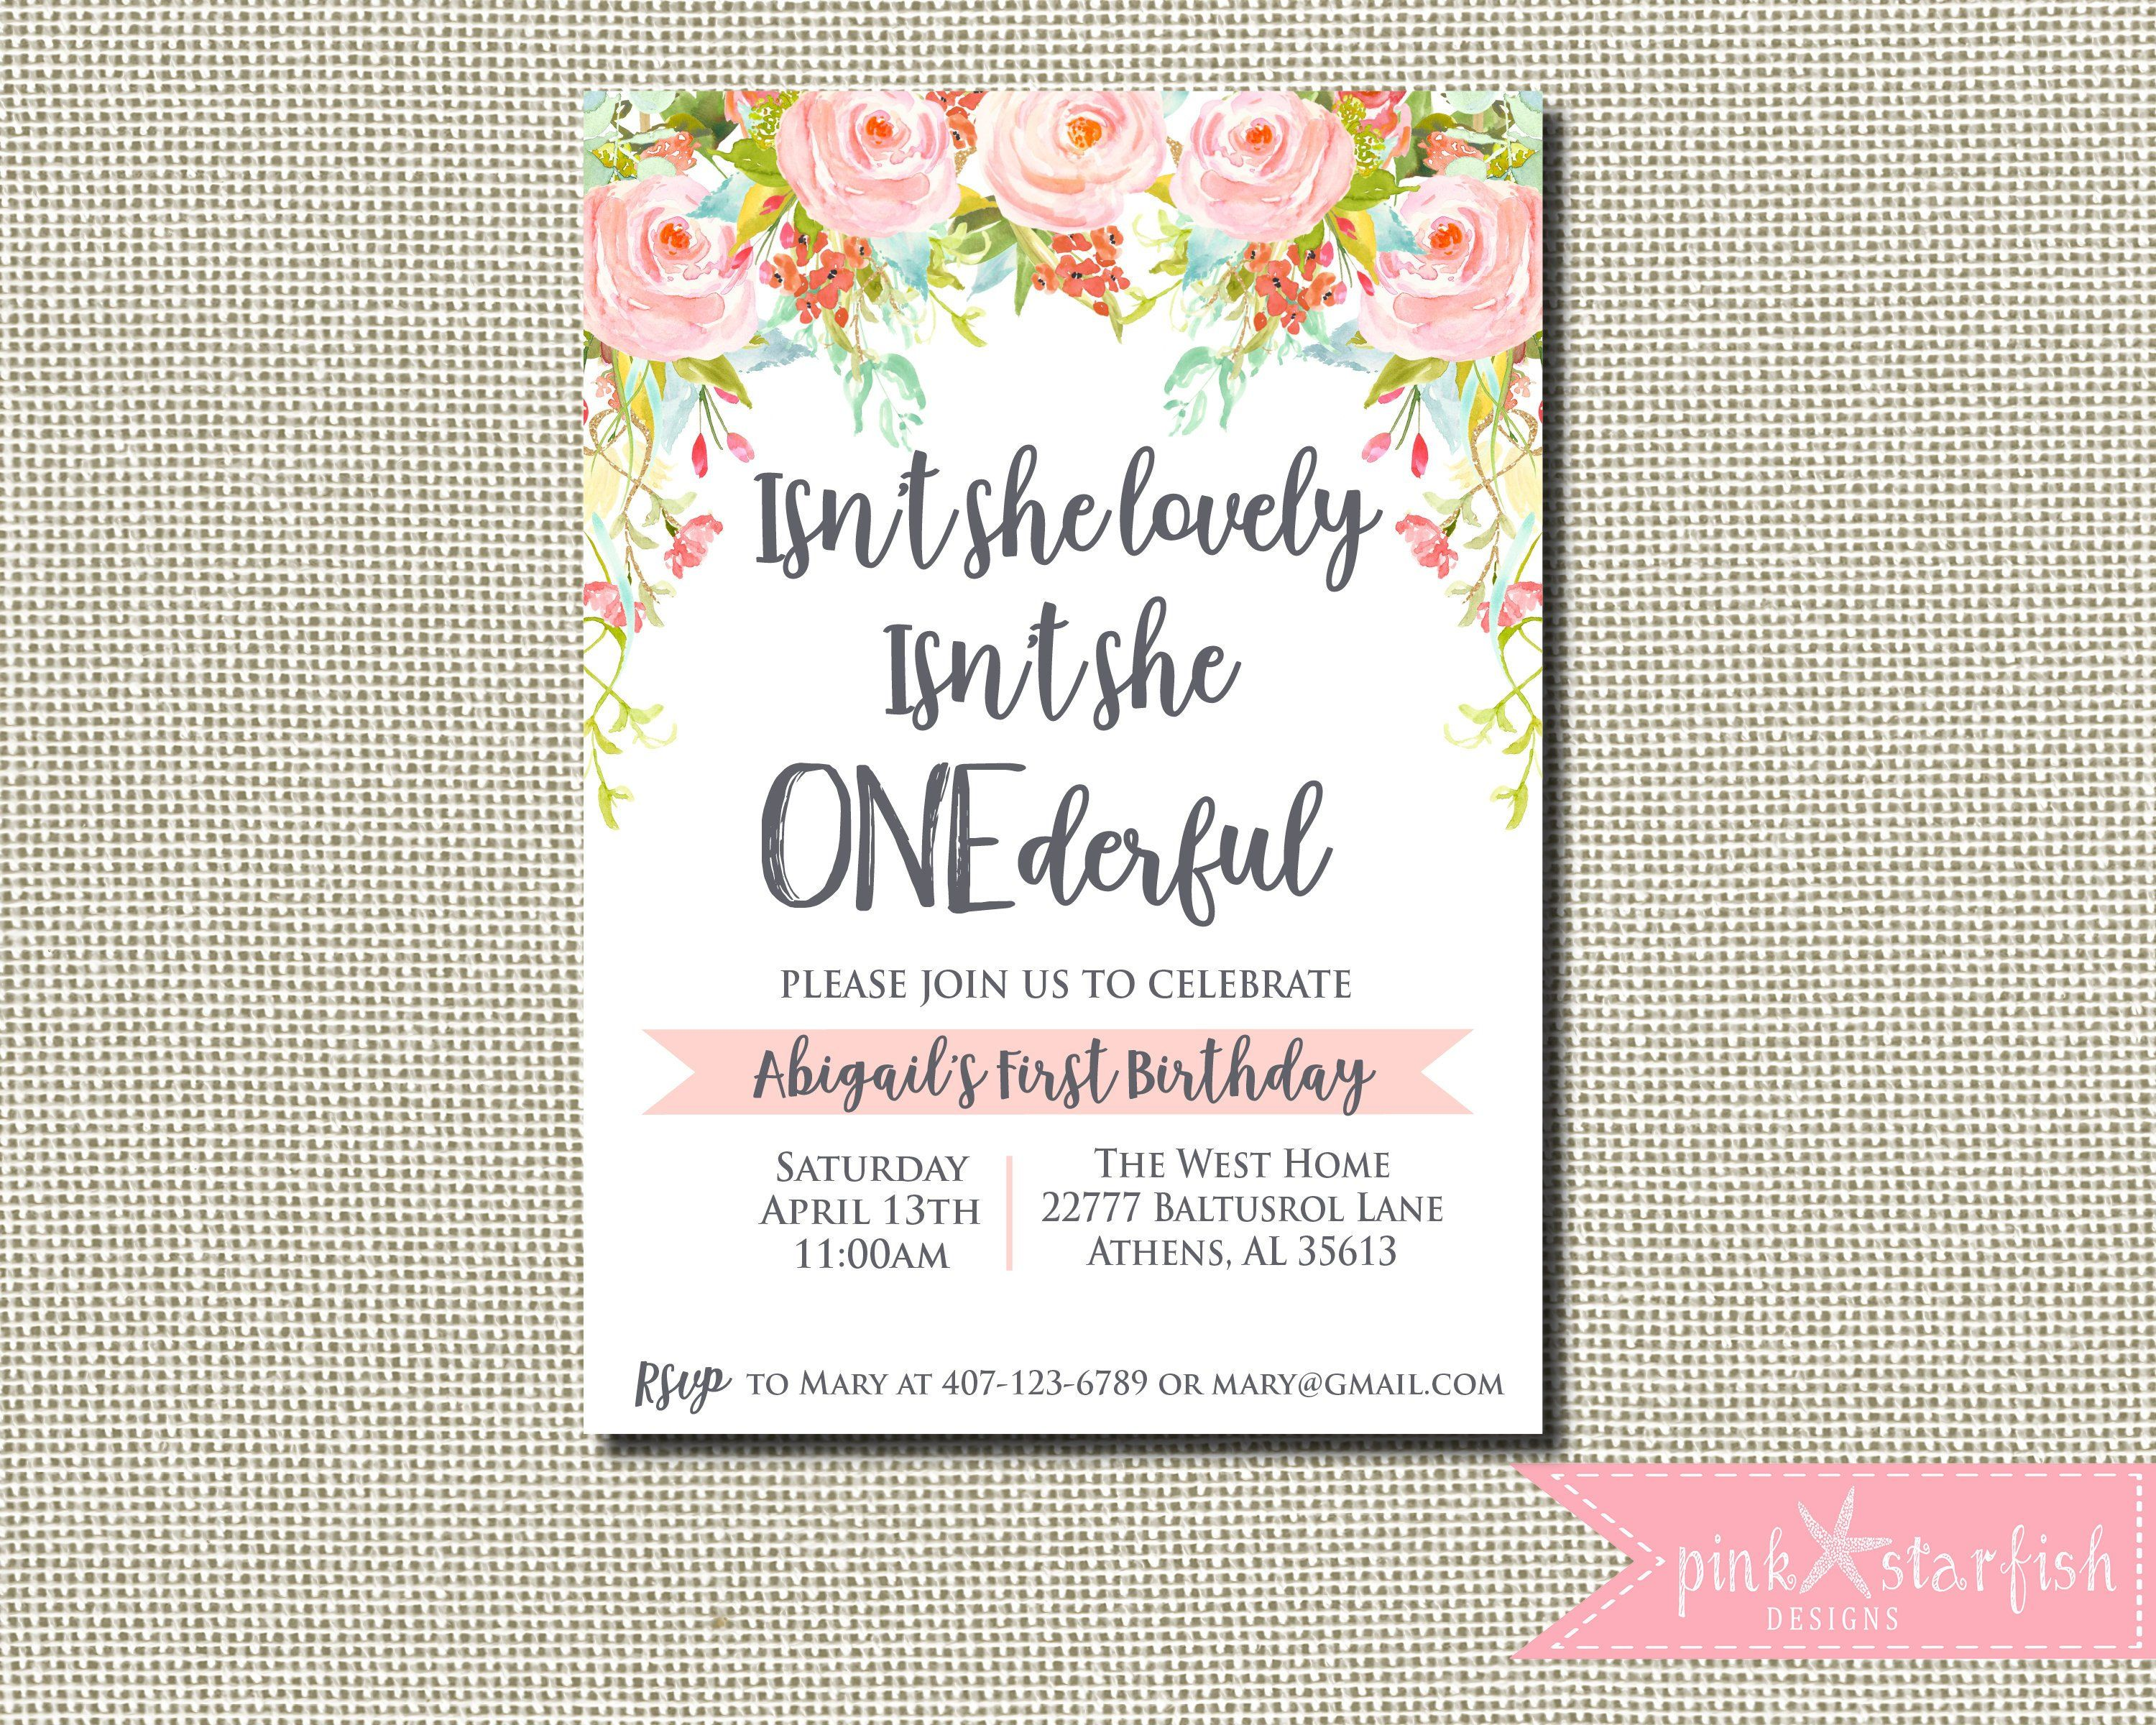 Onederful Invitation, ONEderful Year, Isn't she lovely invite, Isn't she onederful, girl first birthday, Onederful Birthday Invitation #firstbirthdaygirl